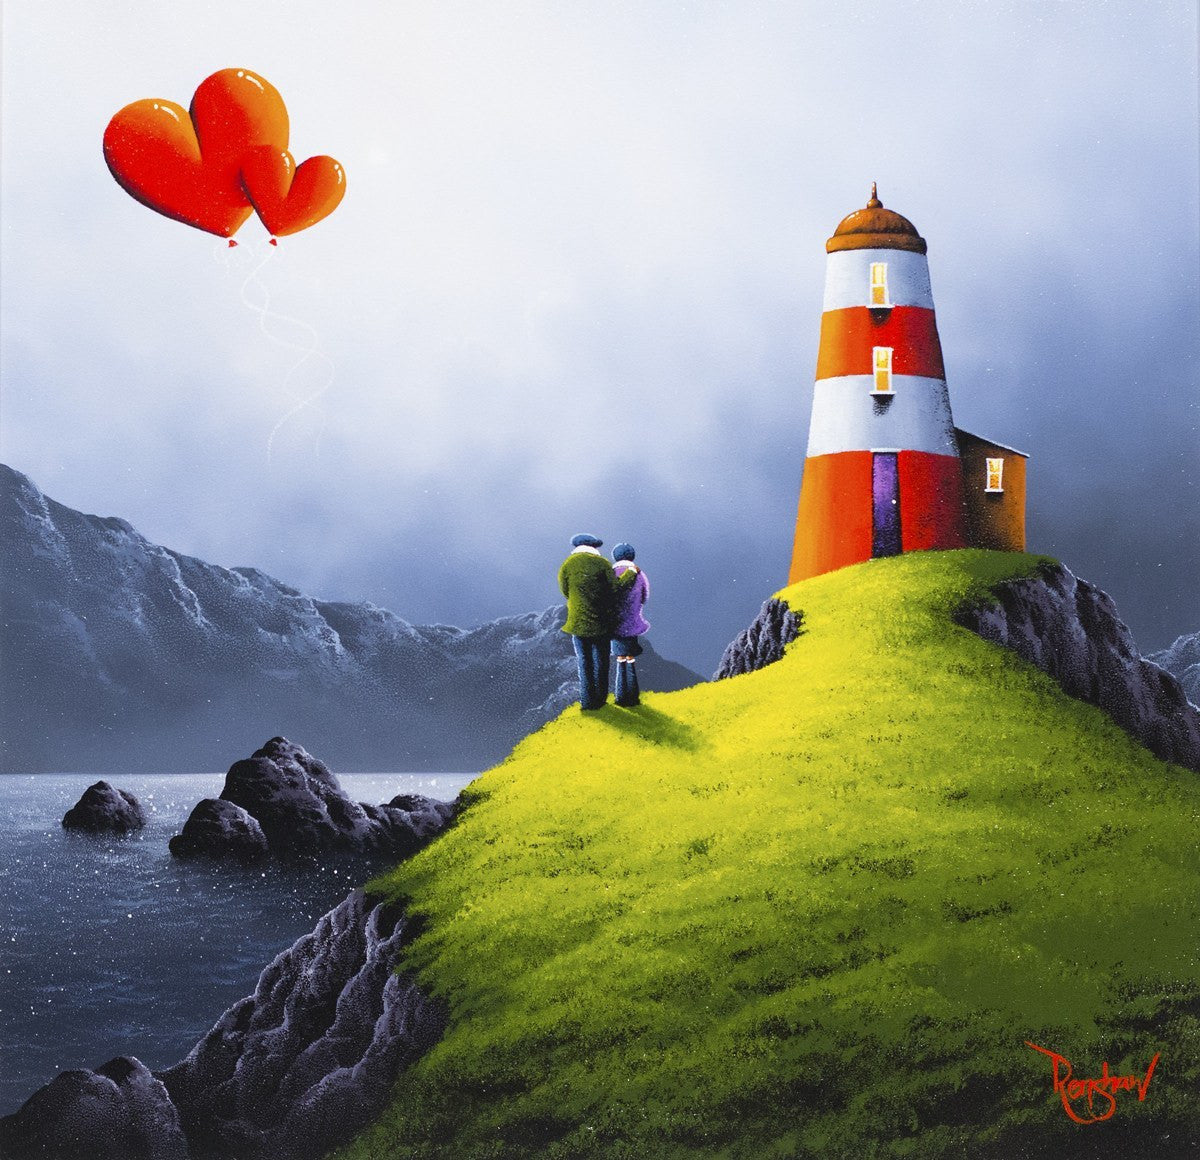 On the Horizon - SOLD David Renshaw